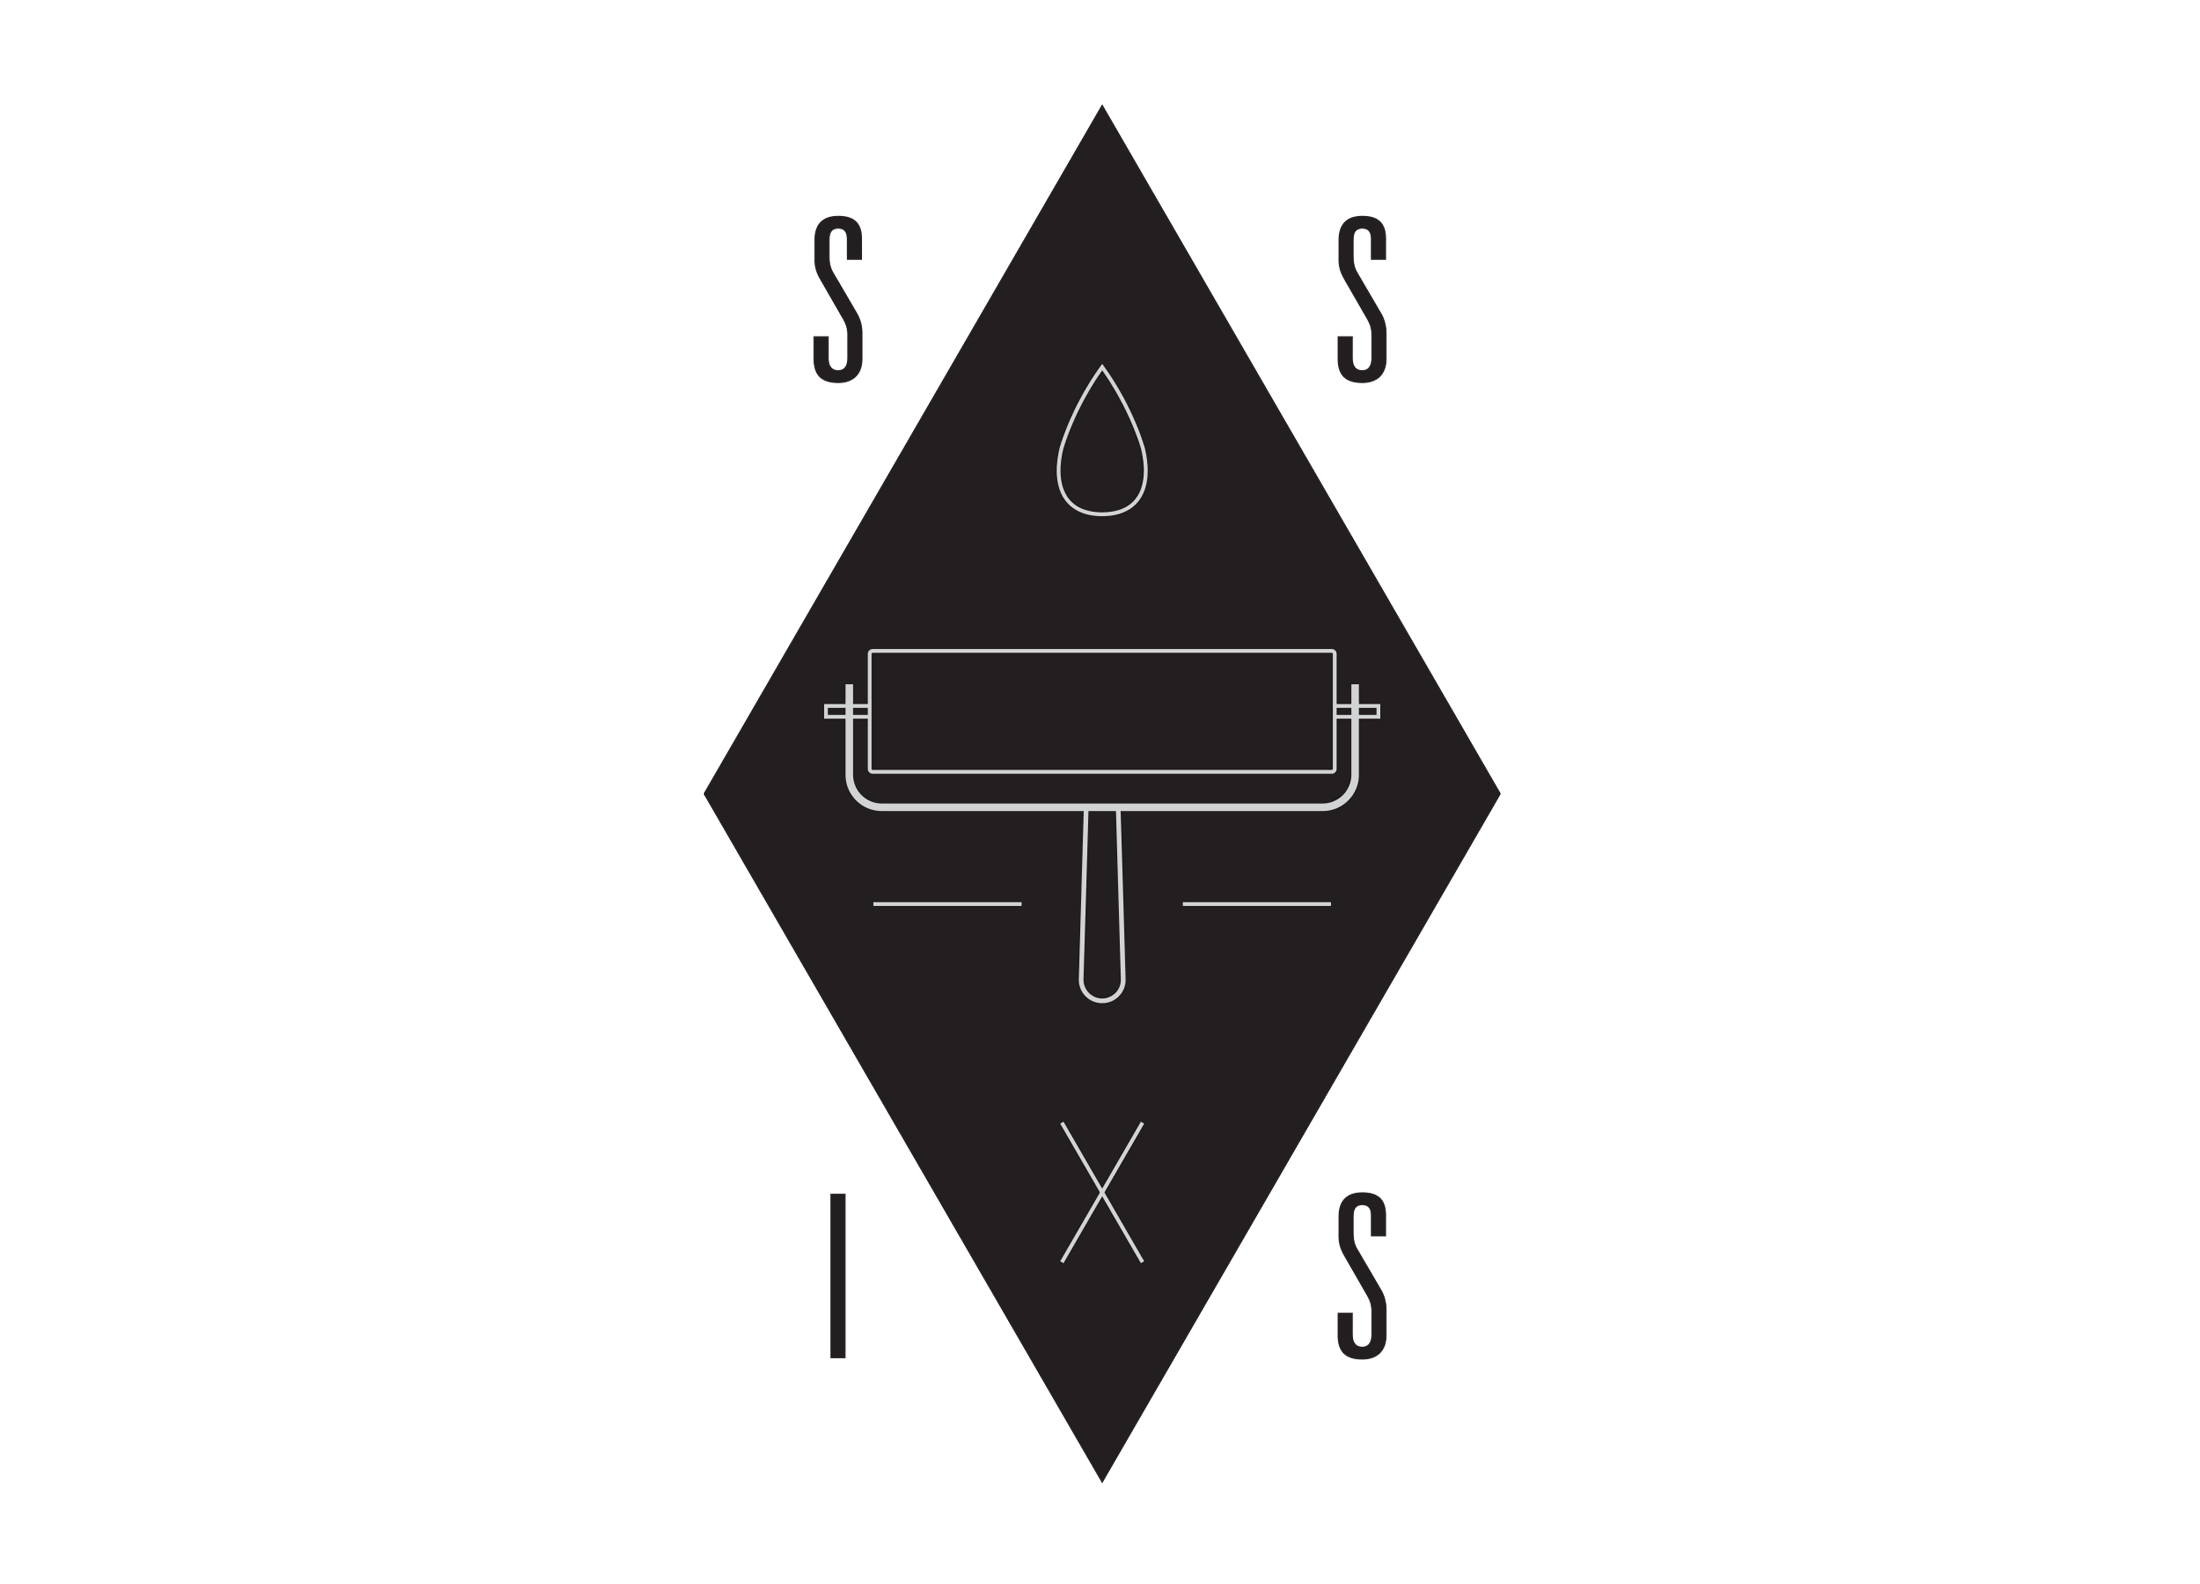 The Secret Society of Ink Slingers logo.